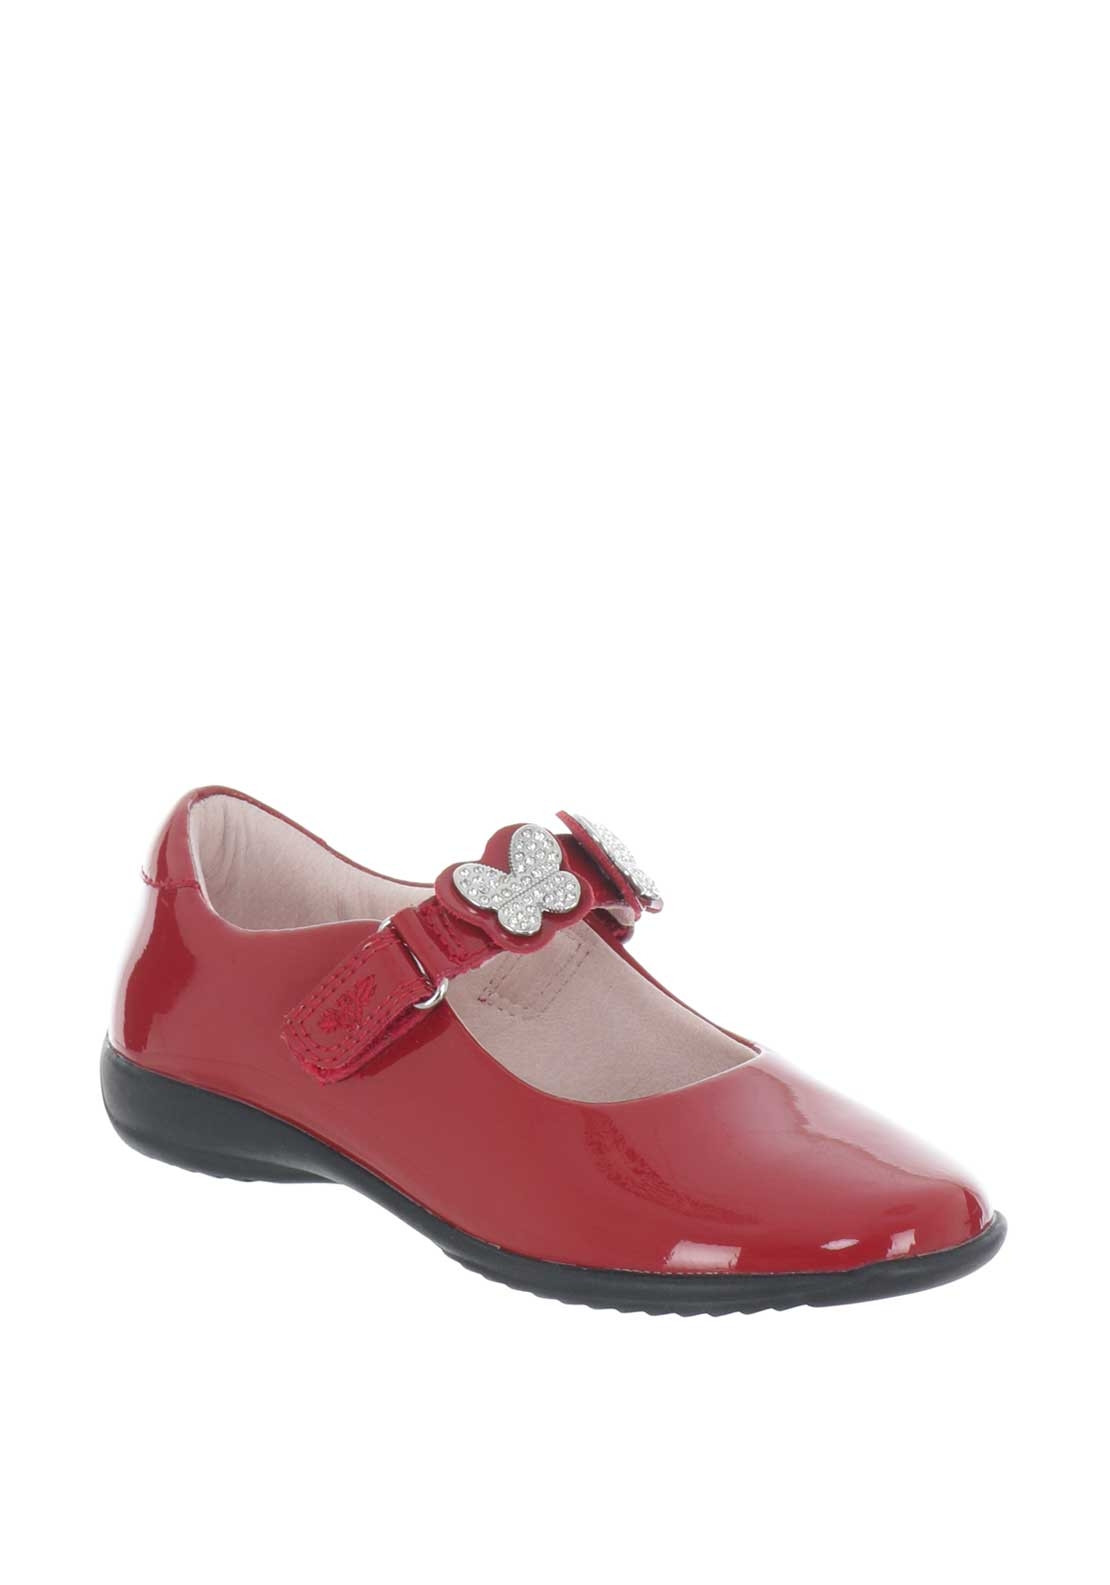 54f5206291c51 Lelli Kelly Girls Butterfly Patent Shoes, Red | McElhinneys